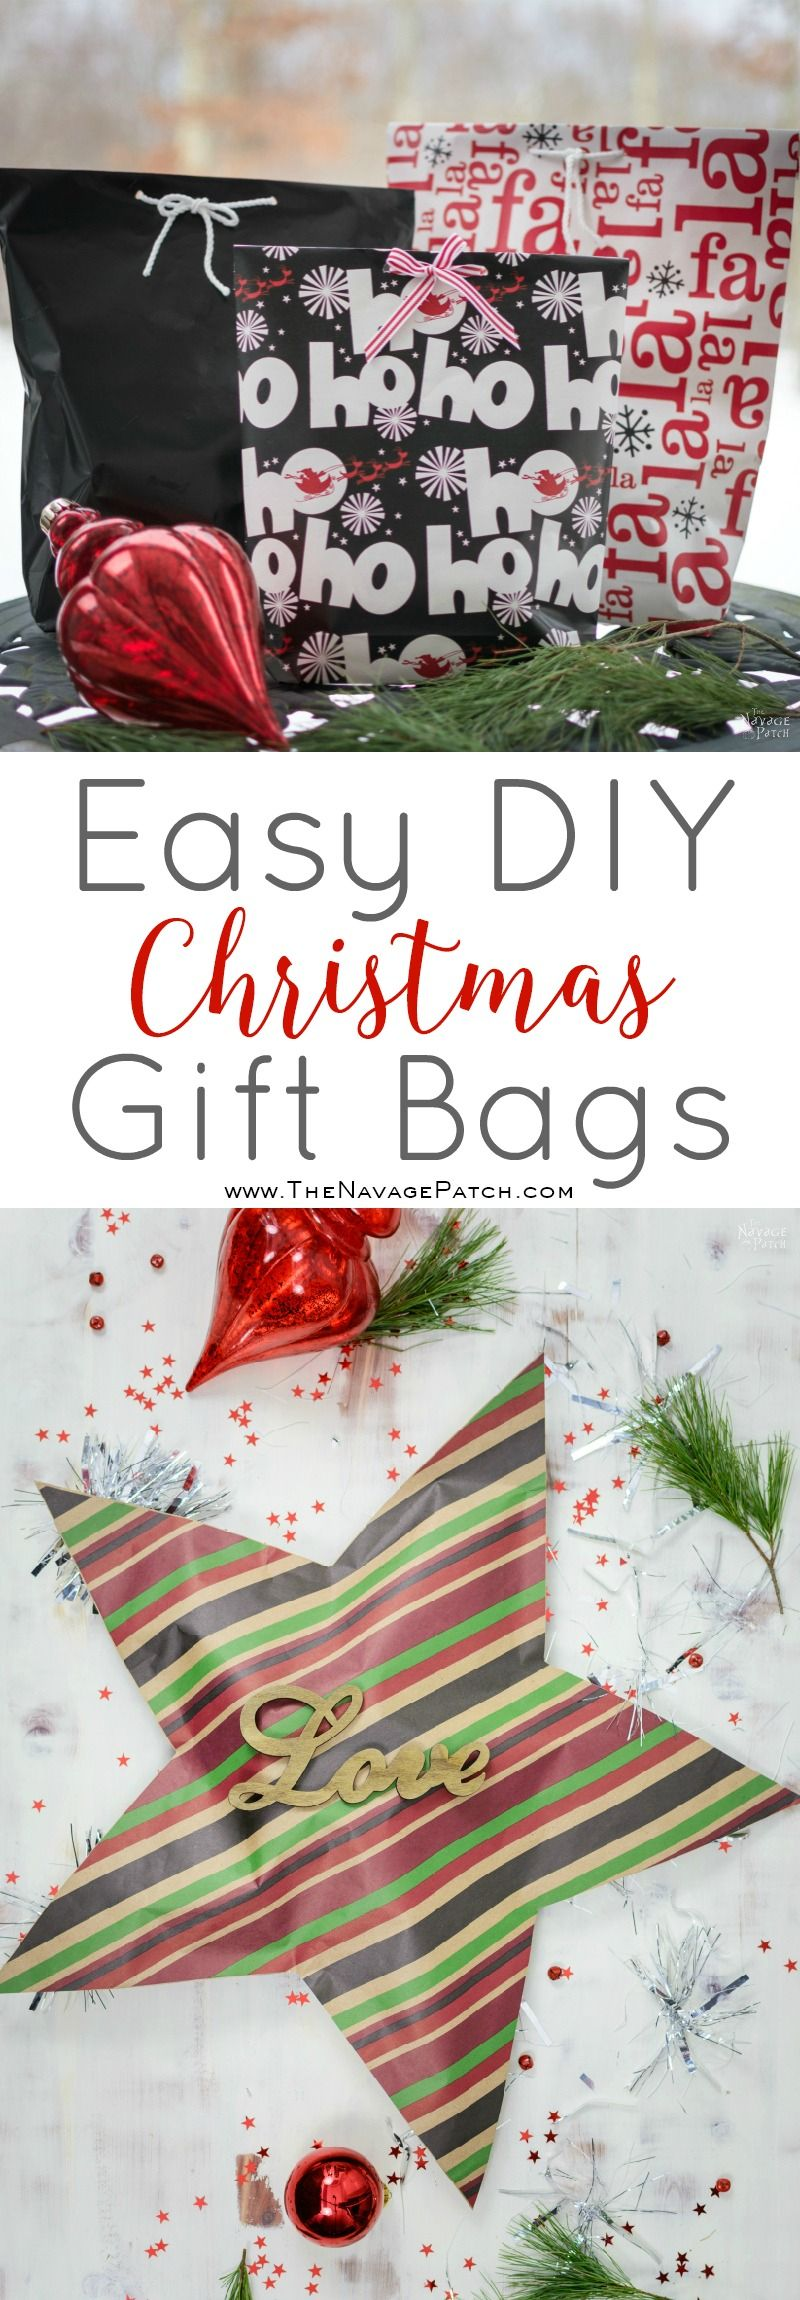 Easy DIY Christmas Gift Bags | Fun and Stylish Christmas Gift Wrapping Ideas | DIY Christmas Gift Wrapping Ideas | Easy and Budget Friendly Gift Wrapping | Creative Gift Wrapping Ideas | Creative Gift Topper Ideas | DIY Christmas Gift Toppers | DIY Christmas Crafts | #DIYChristmas #DIYGifts #DIYGiftBags #CreativeGiftWrapping #DIYChristmasCrafts #Christmascrafts #Christmas | www.TheNavagePatch.com